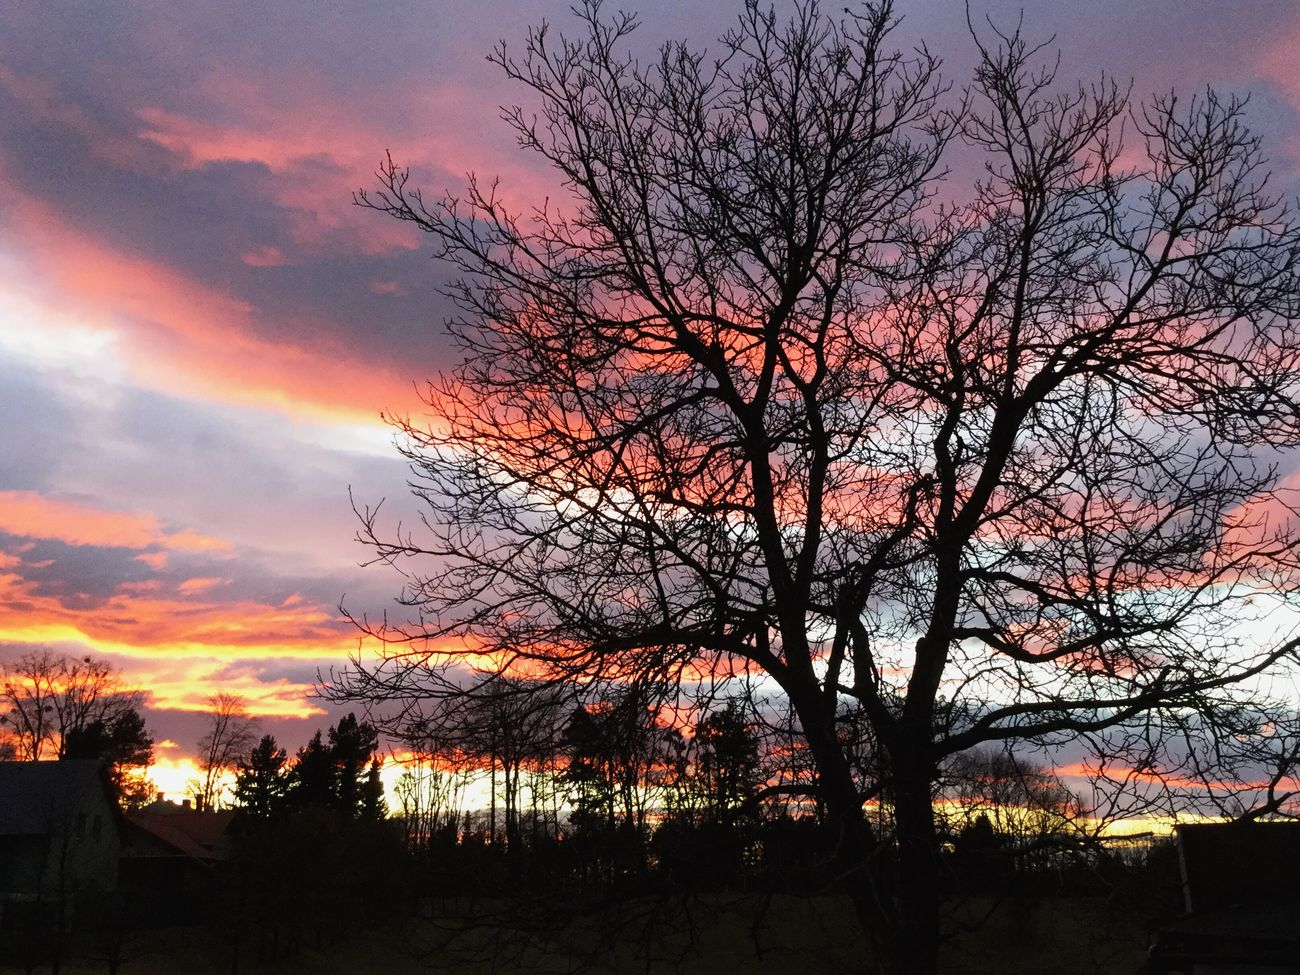 Sunset Beauty In Nature Tree Bare Tree Nature Sky No People Cloud - Sky Tranquility Silhouette Scenics Romantic Sky Outdoors